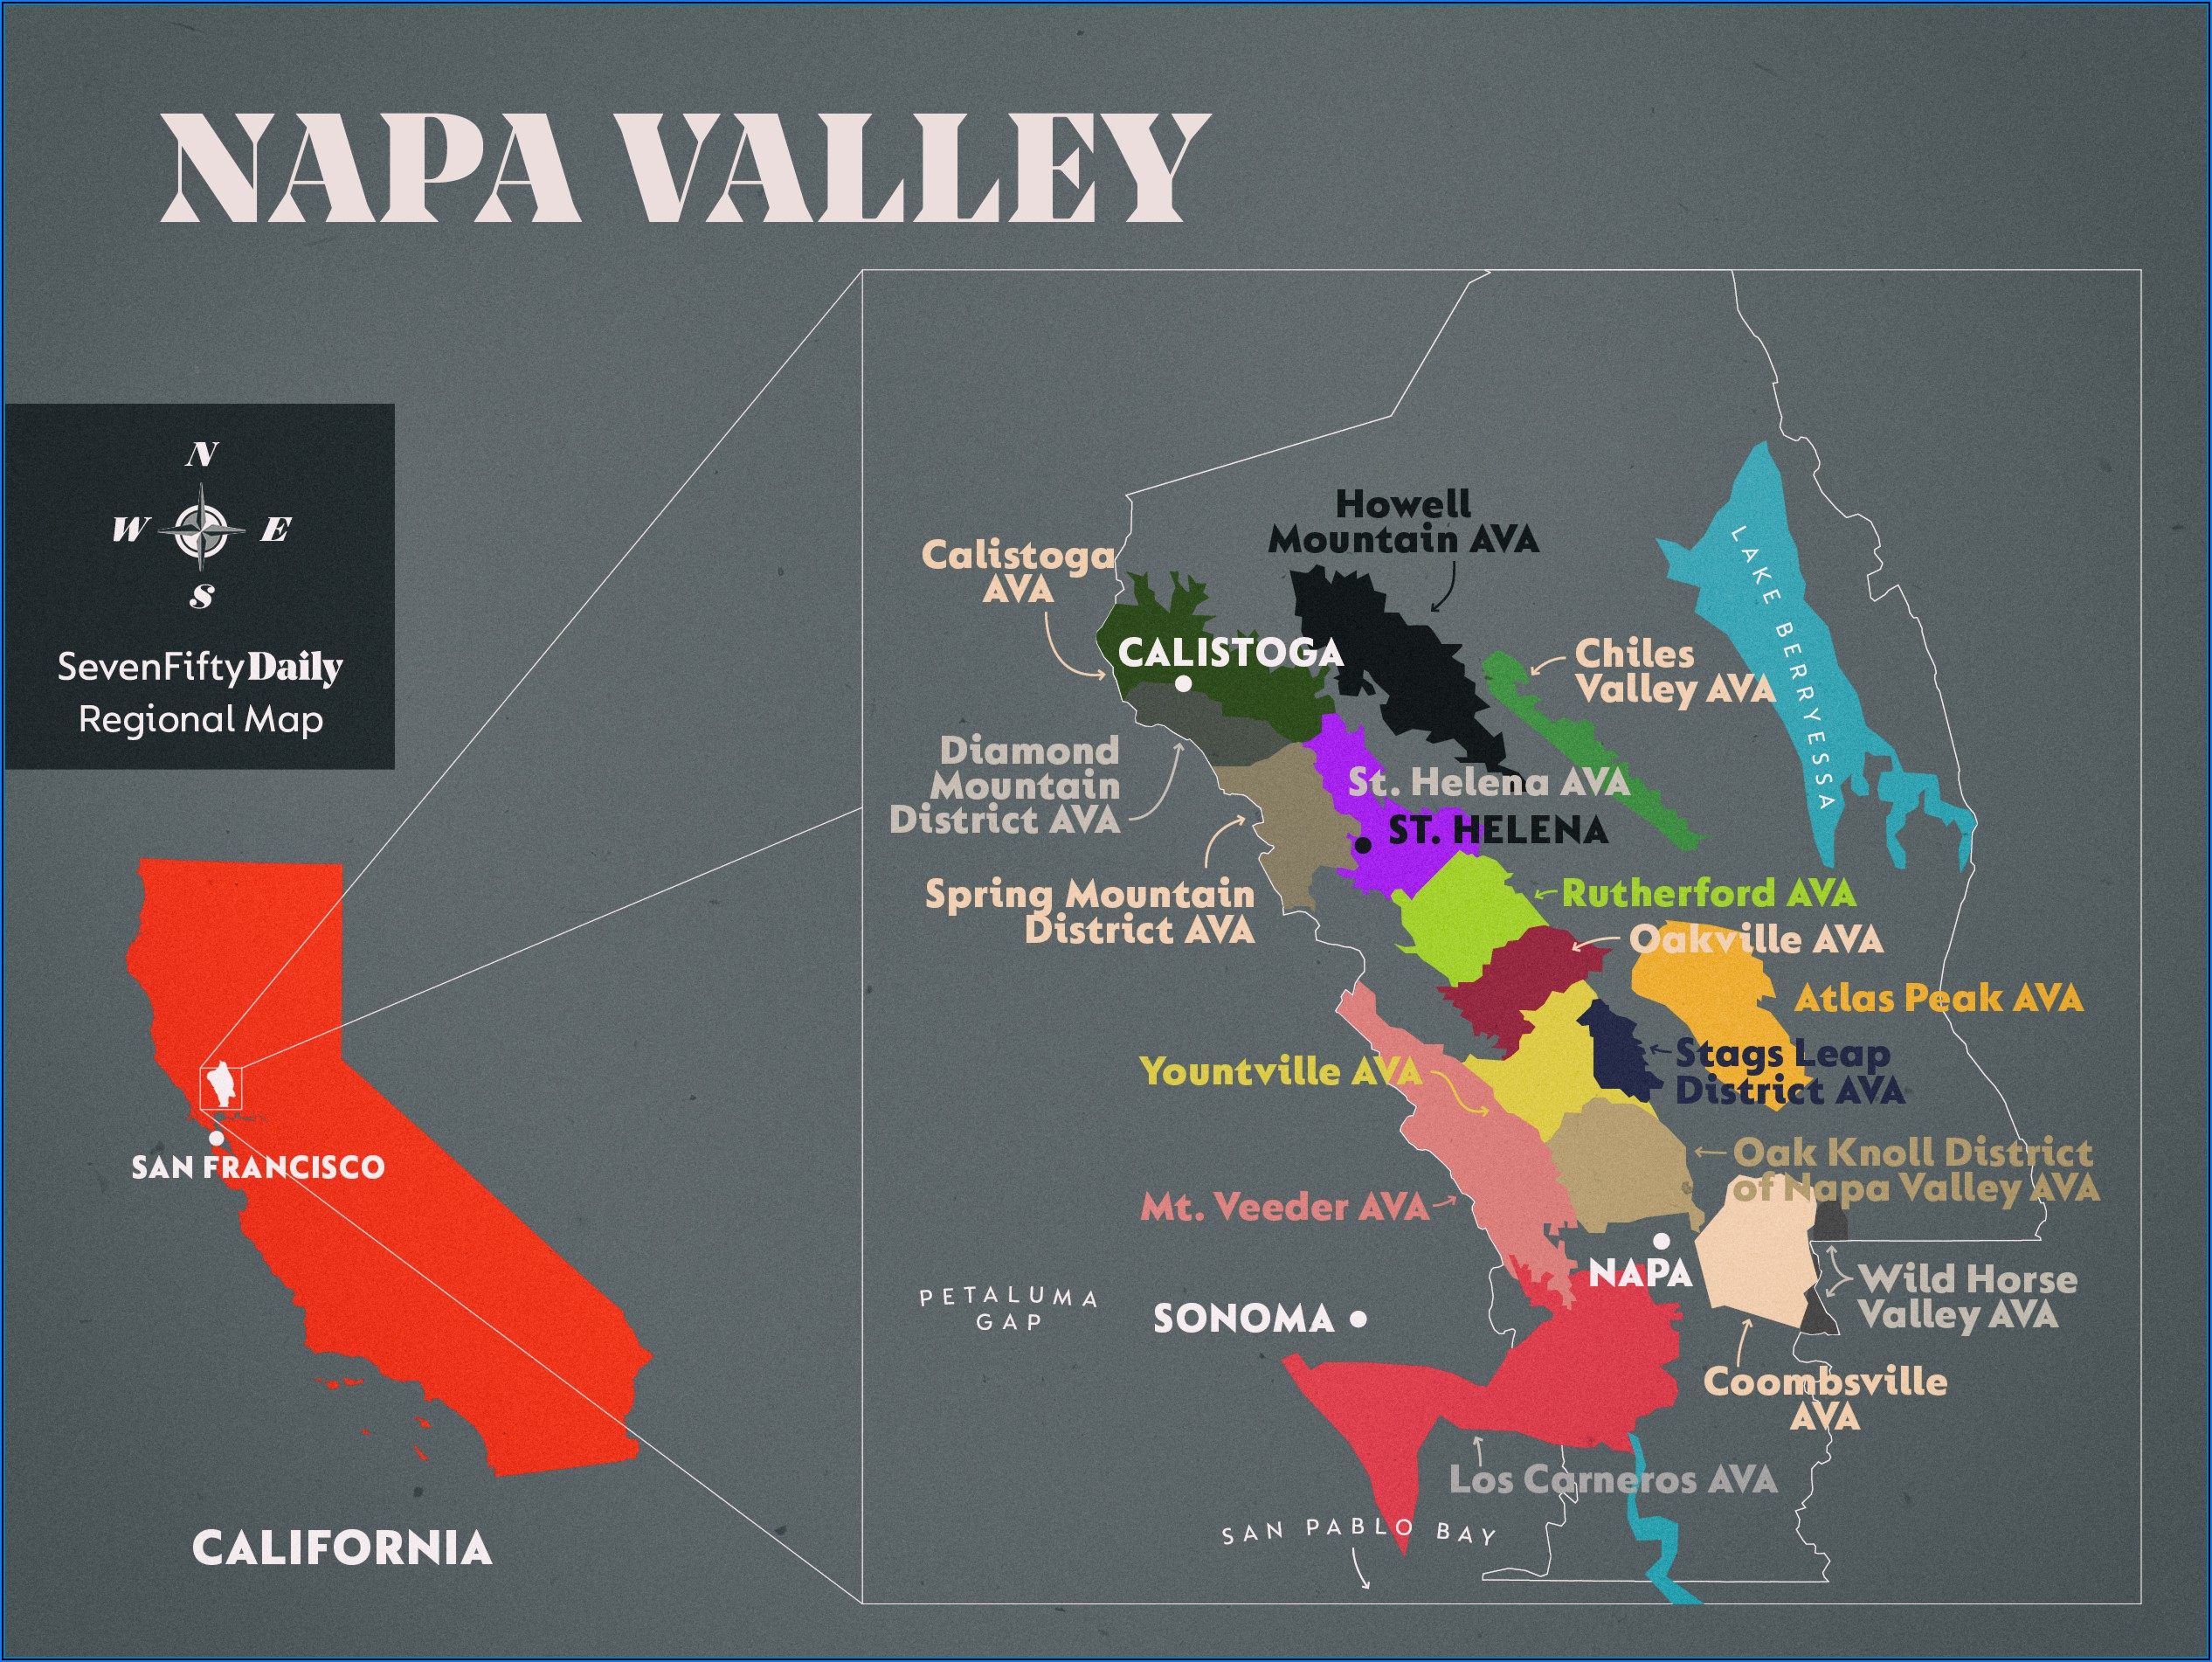 Napa Valley Vintners Ava Map